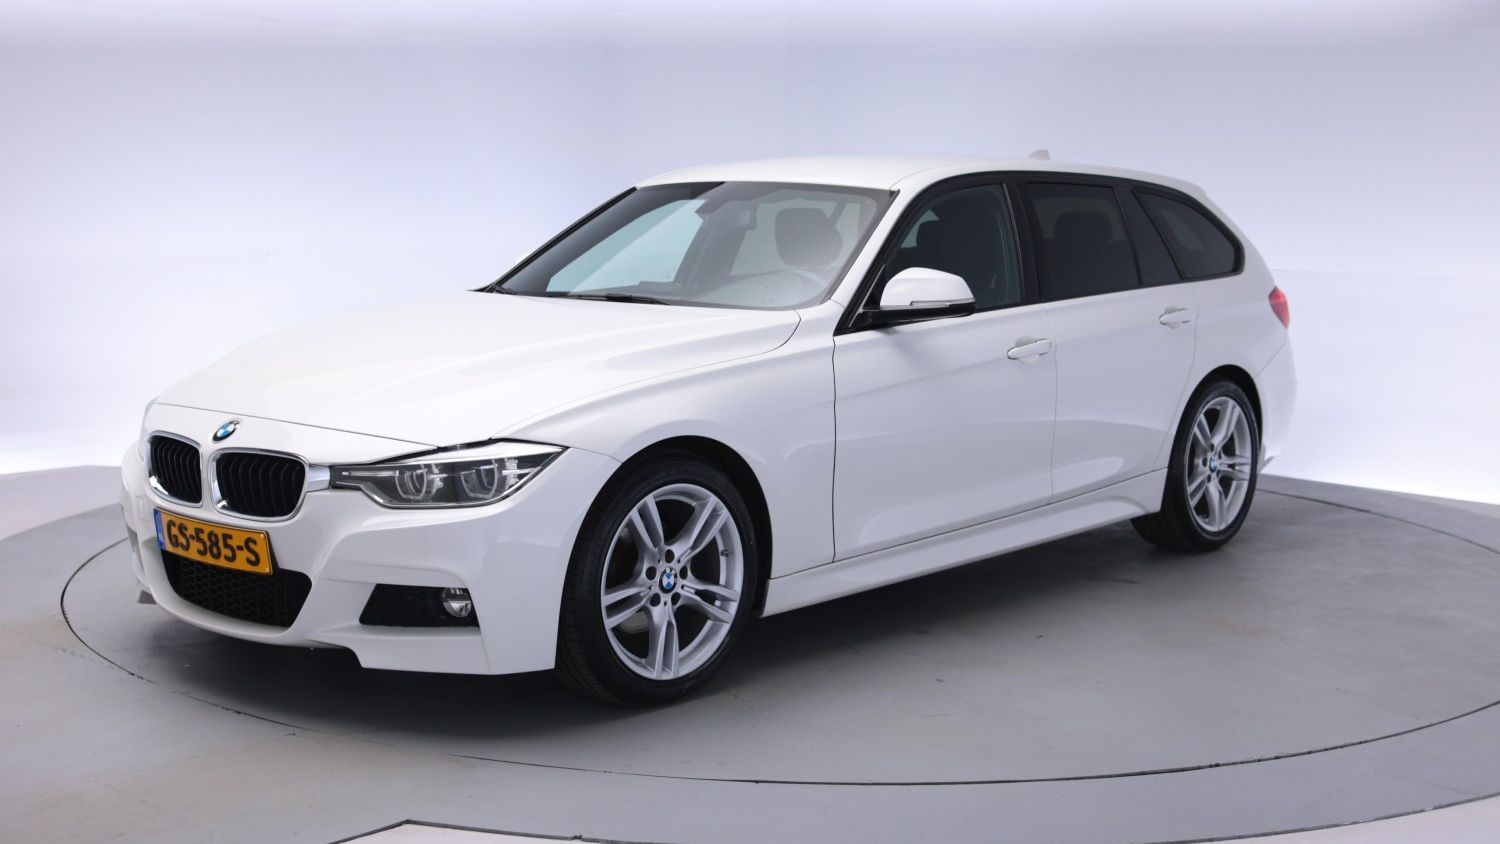 BMW 3-serie Station 2015 GS-585-S 1